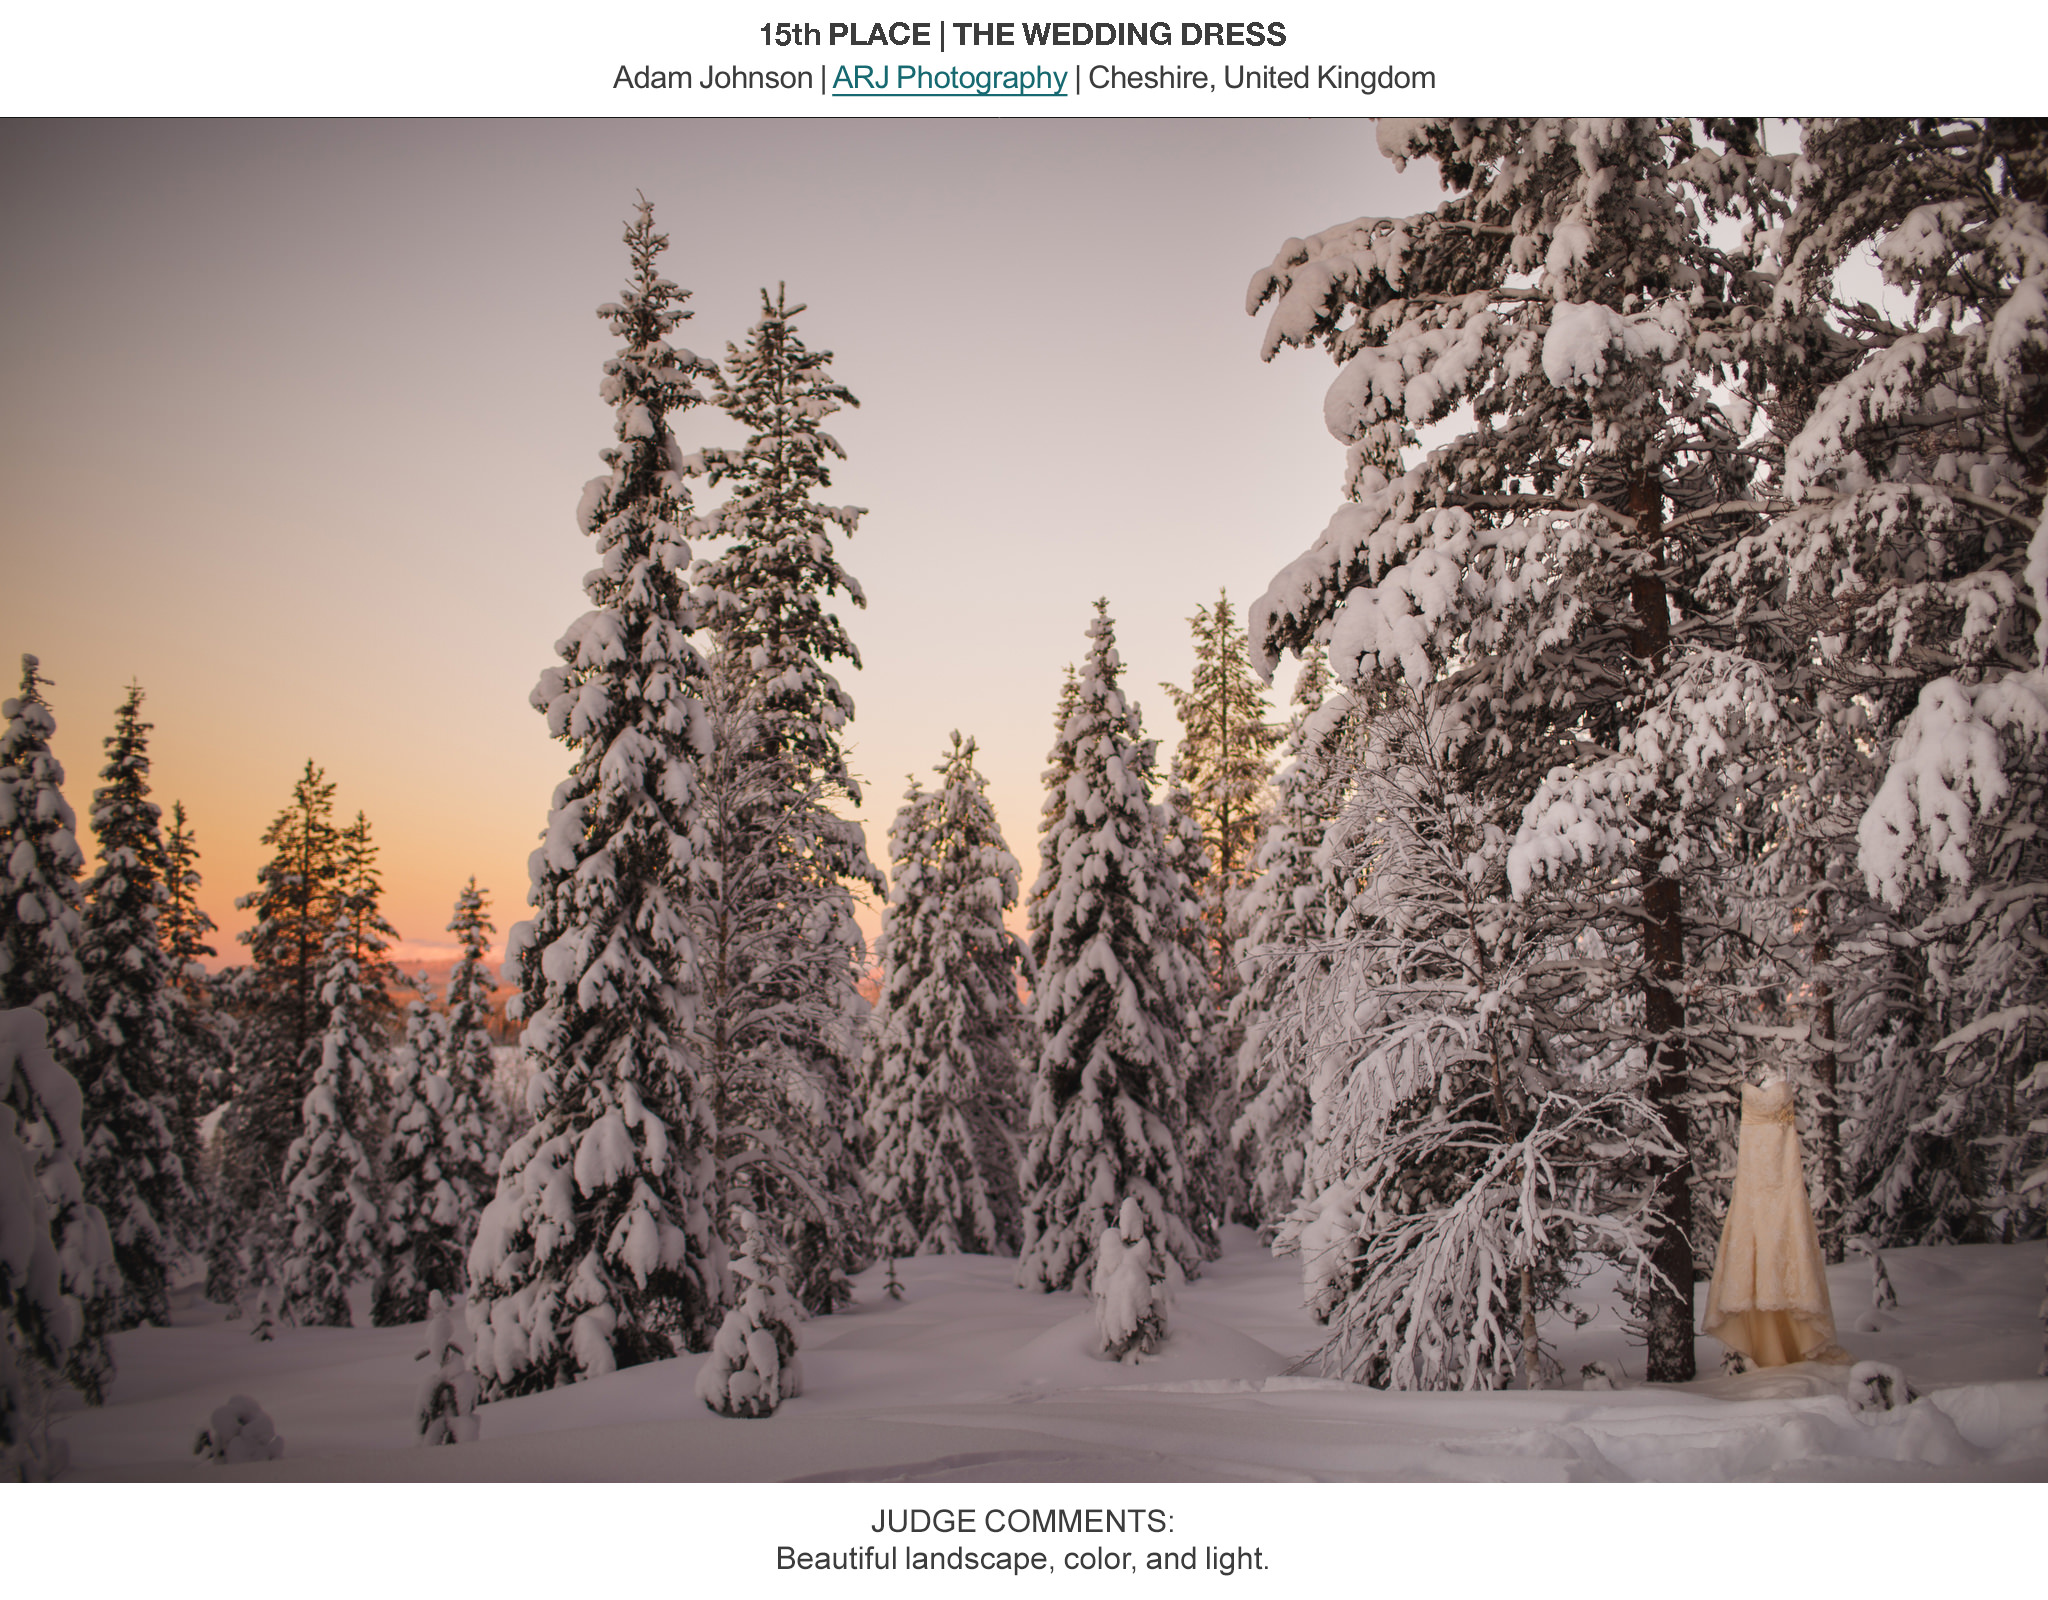 Award Winning Wedding Photography - ISPWP Winter 2014 Contest - ARJ Photography